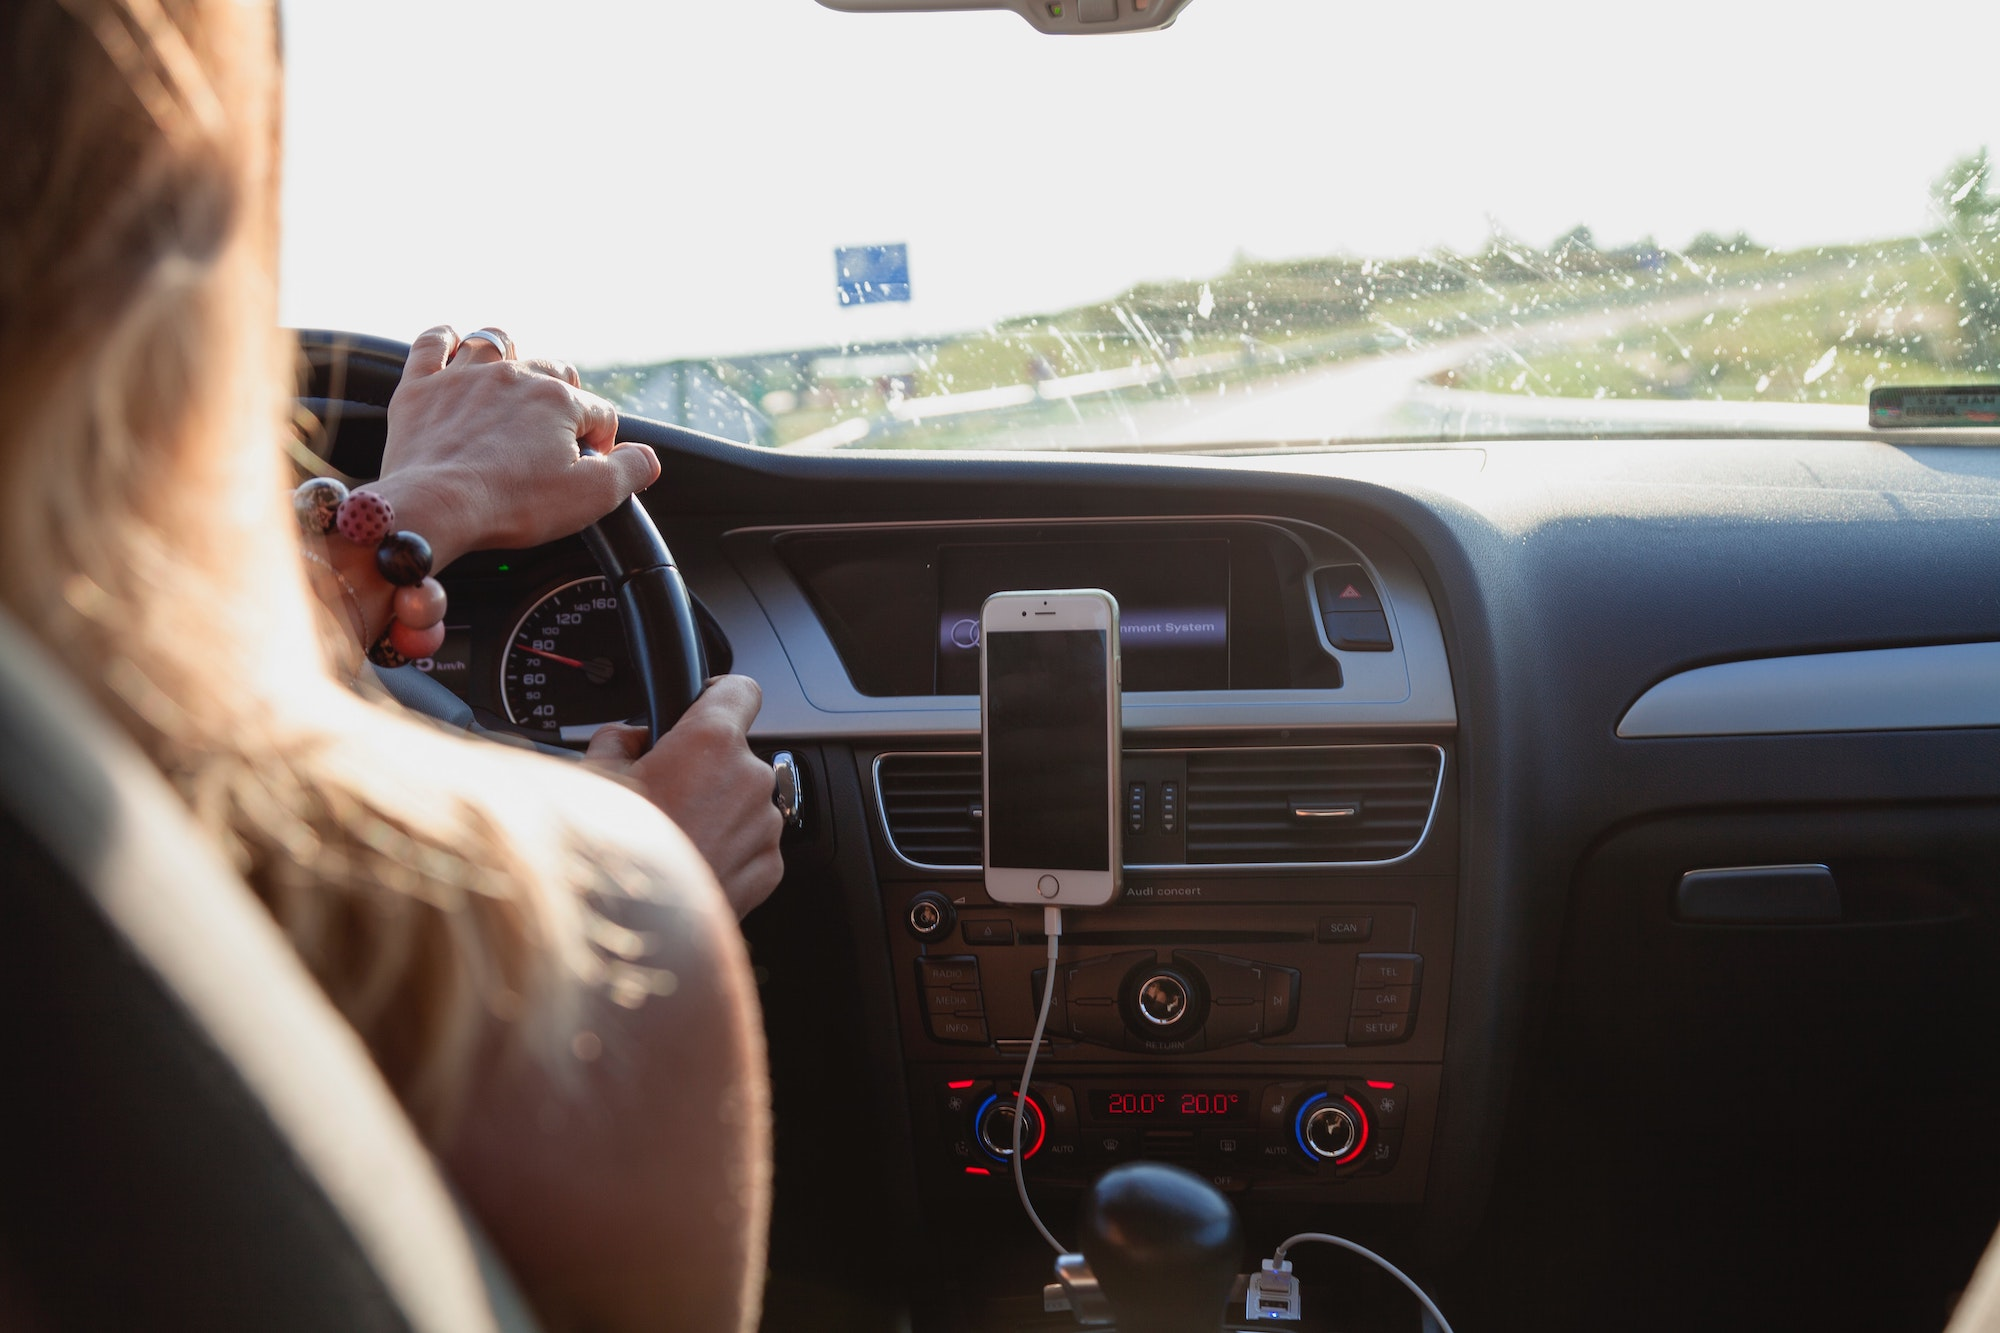 Blonde-haired woman driving on an open road